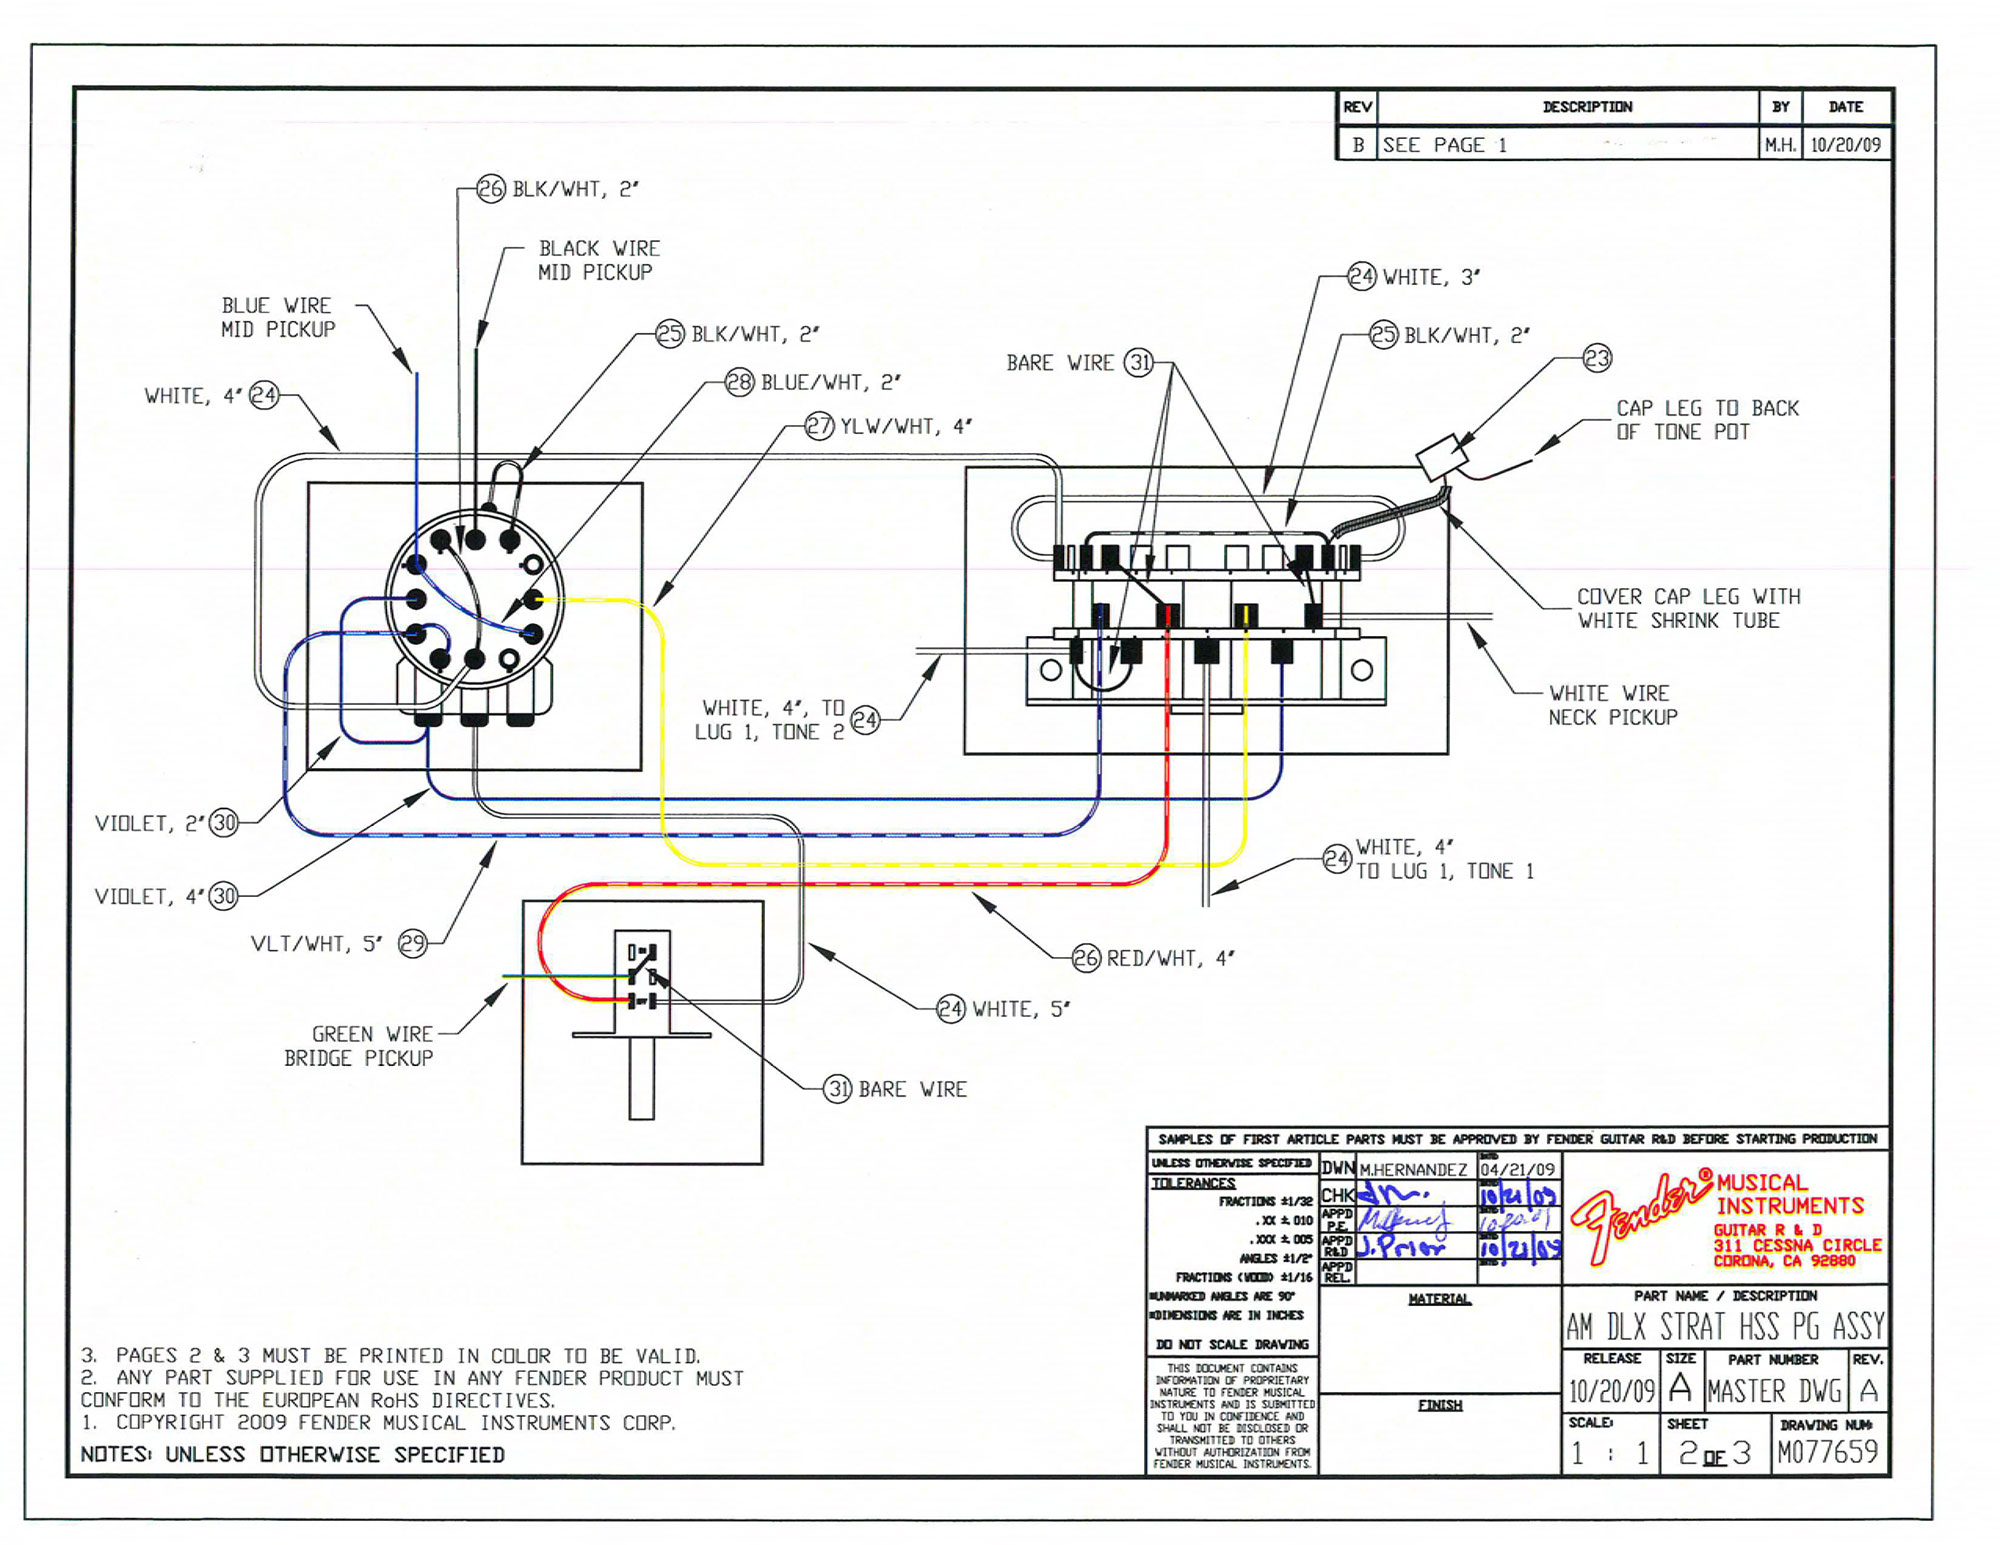 Wiring Diagrams For Fender Squier Strat – The Wiring Diagram ...